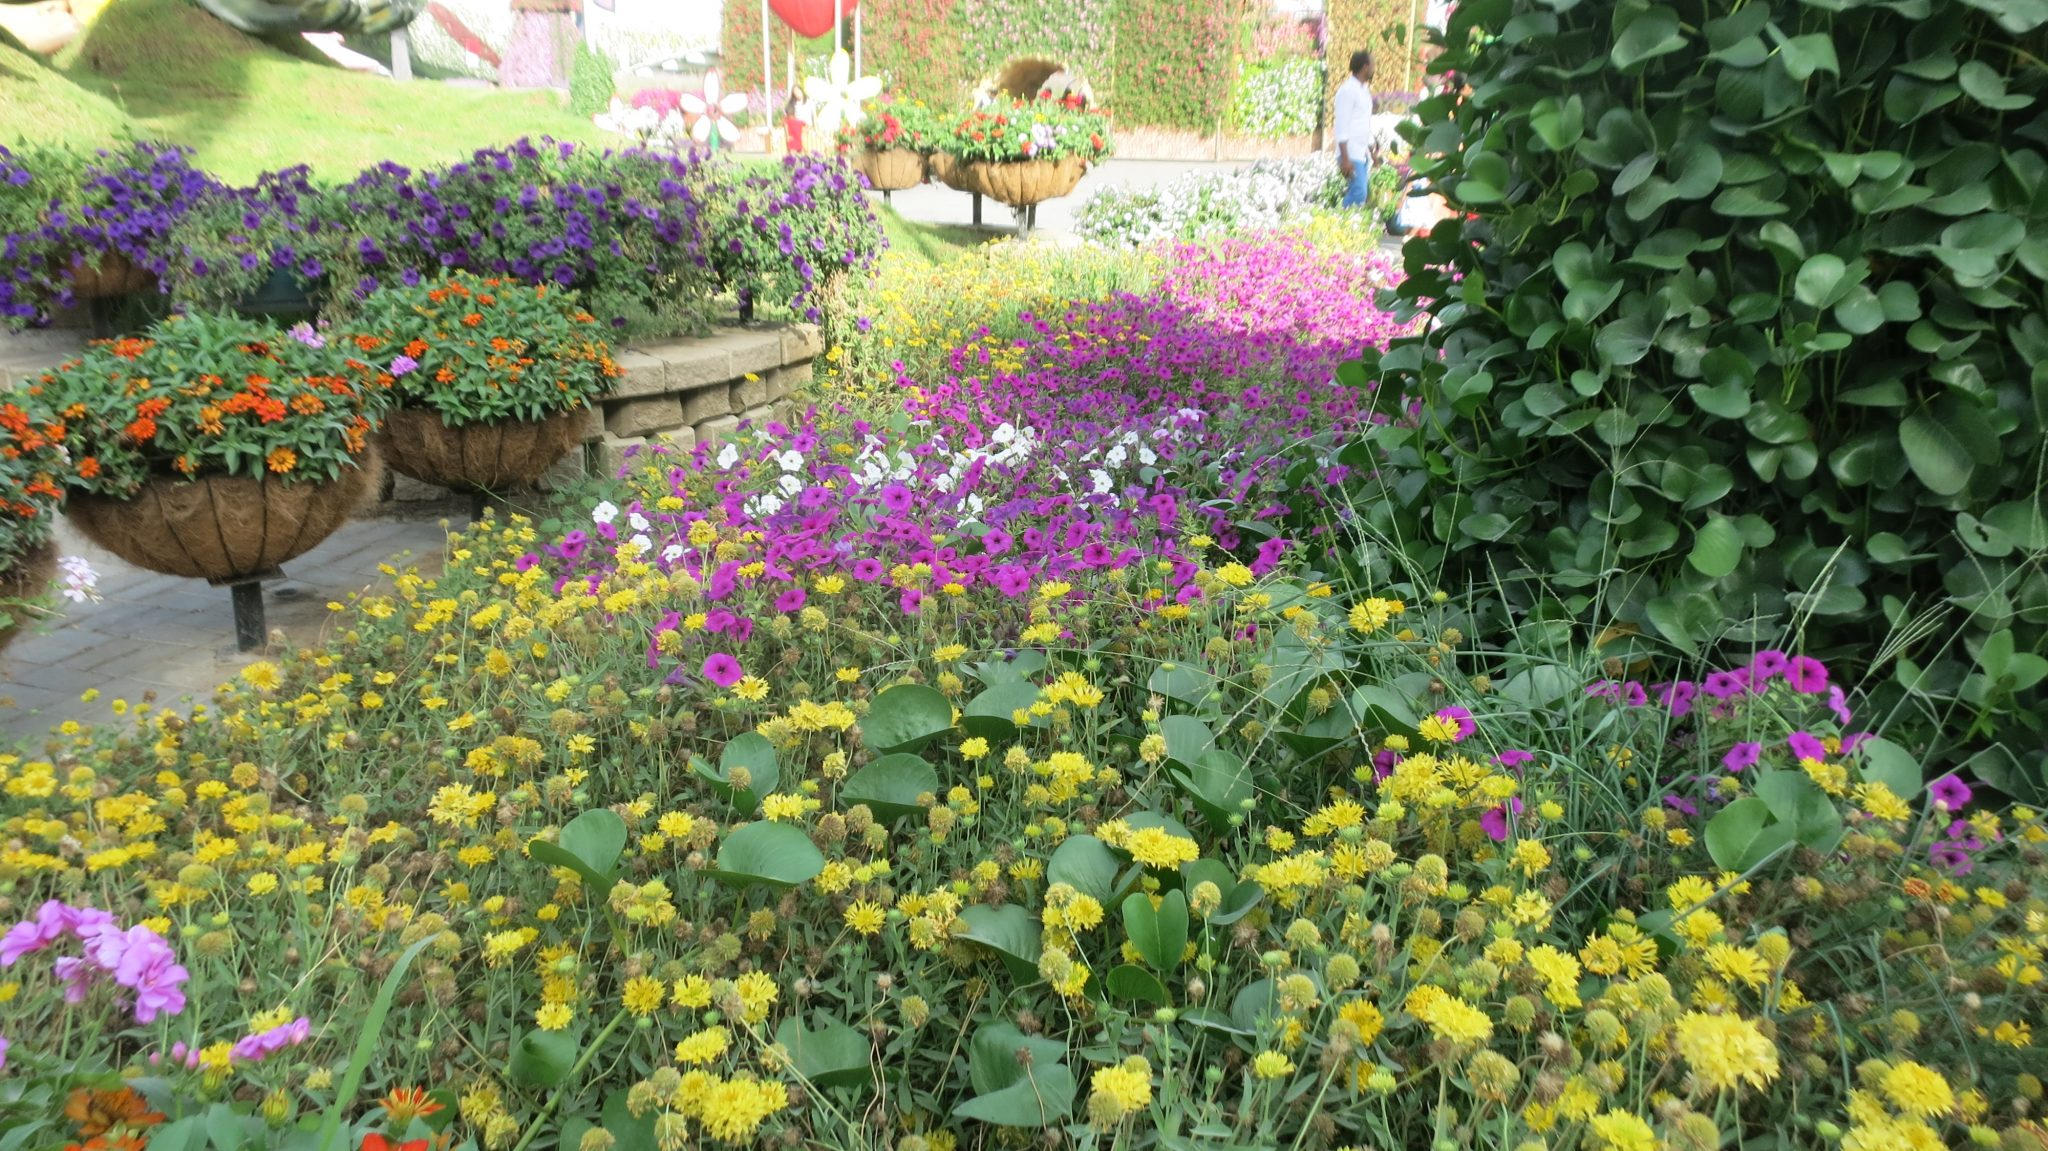 Flowers everywhere we looked in Dubai Miracle Garden.